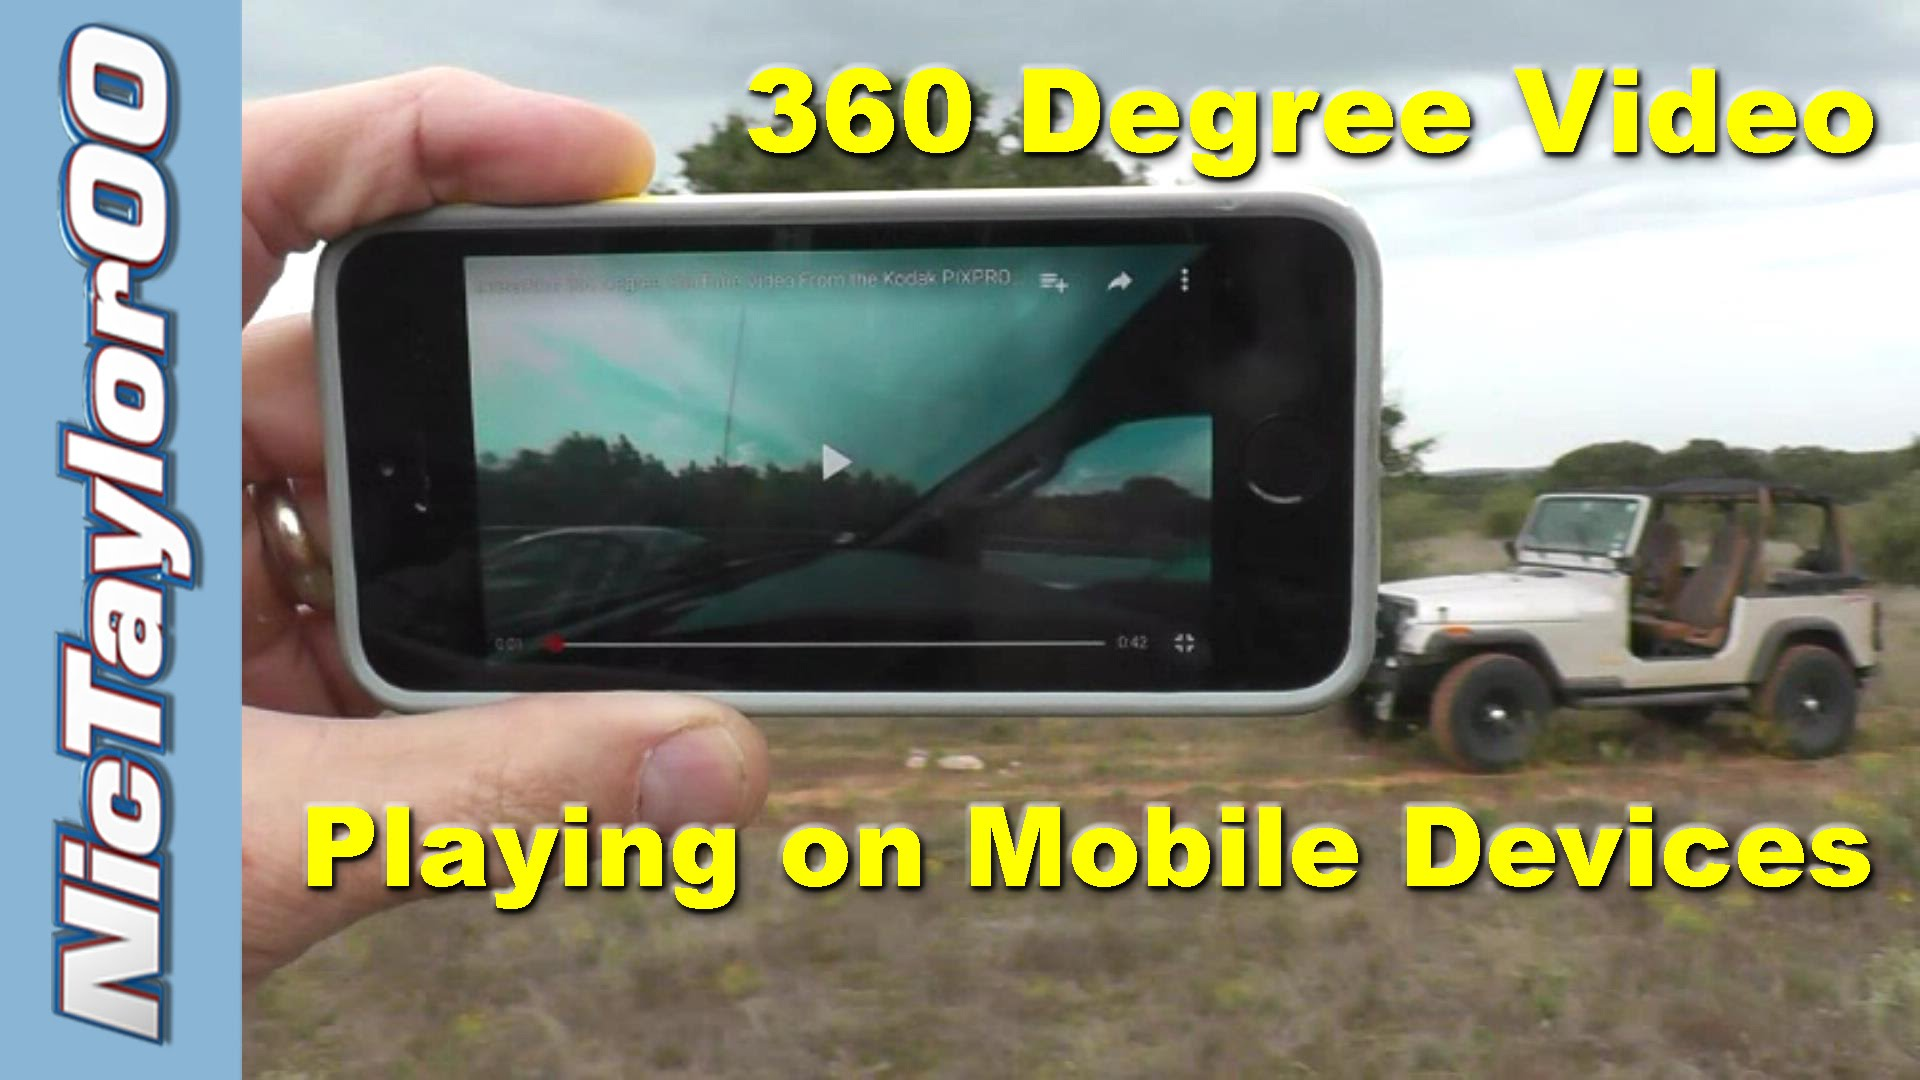 360 Degree Video as Seen on Your Phone, Tablet or Mobile Device